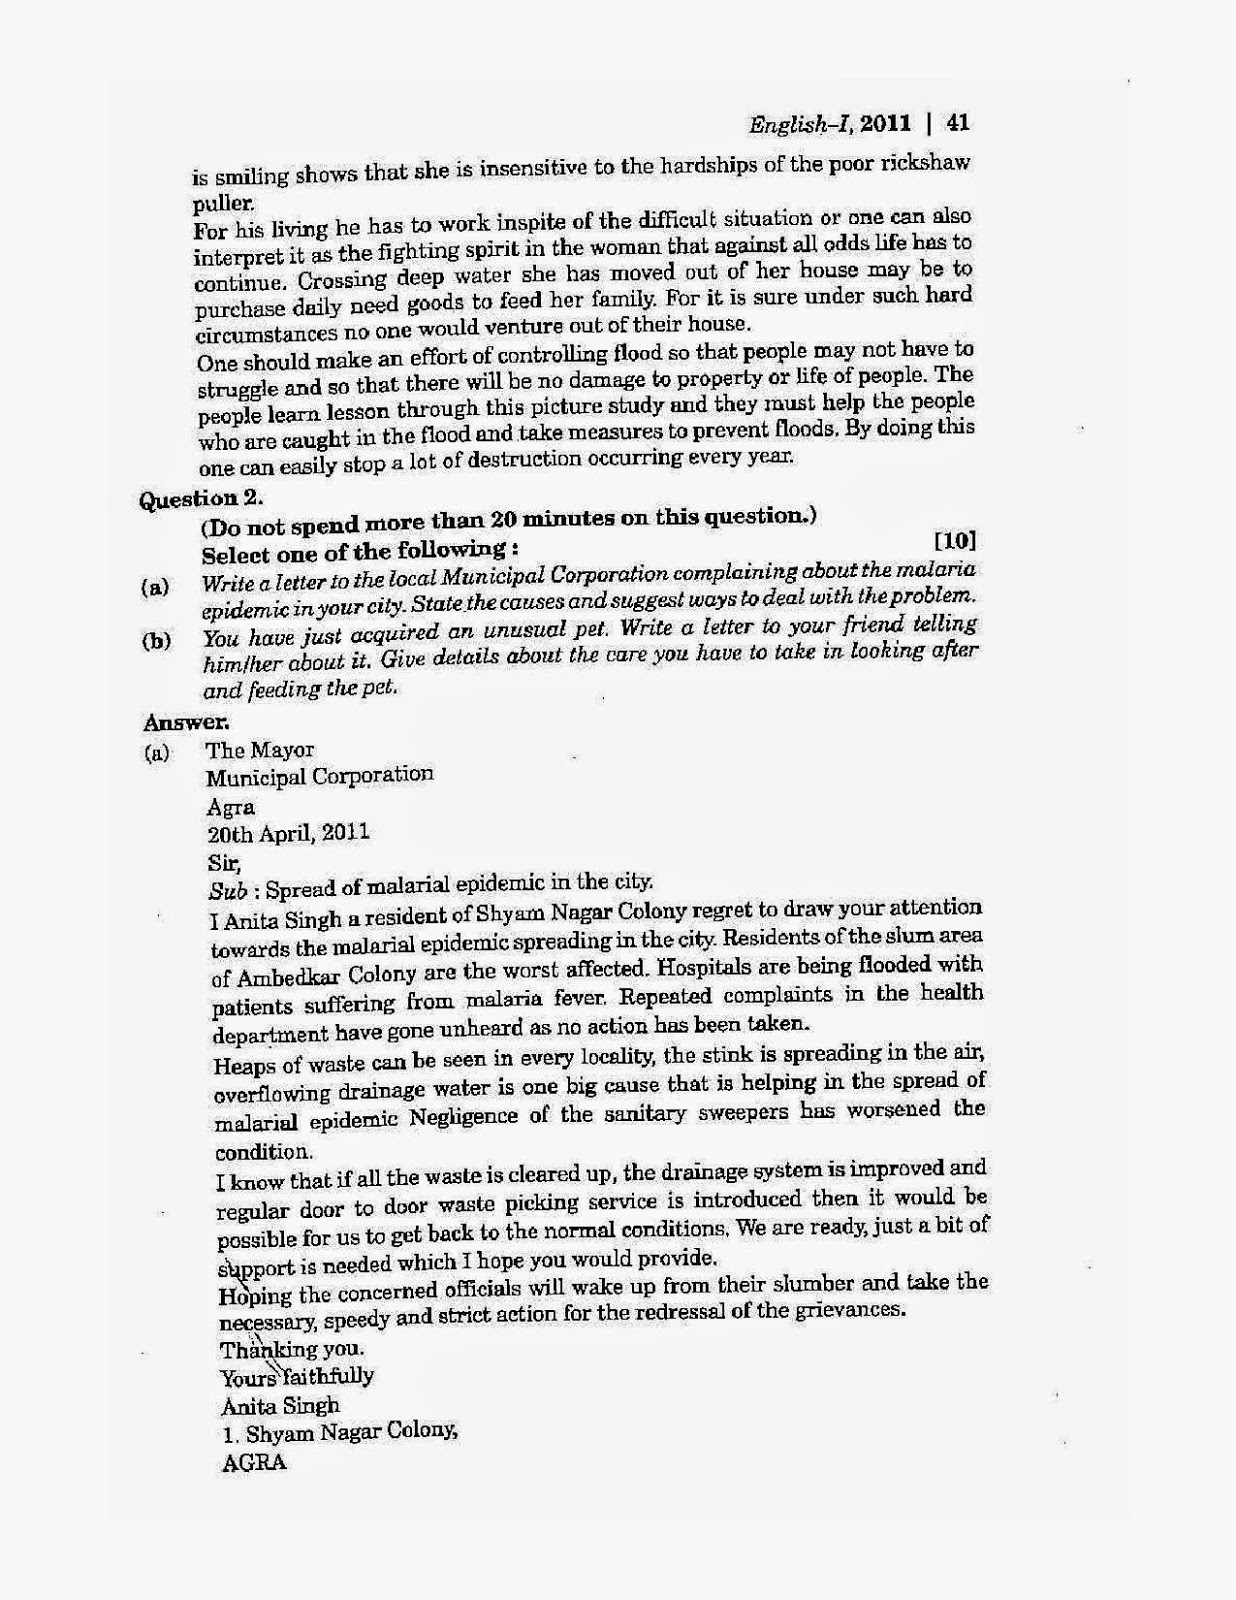 Icse class 10th 2011 English Language solved question paper 2011